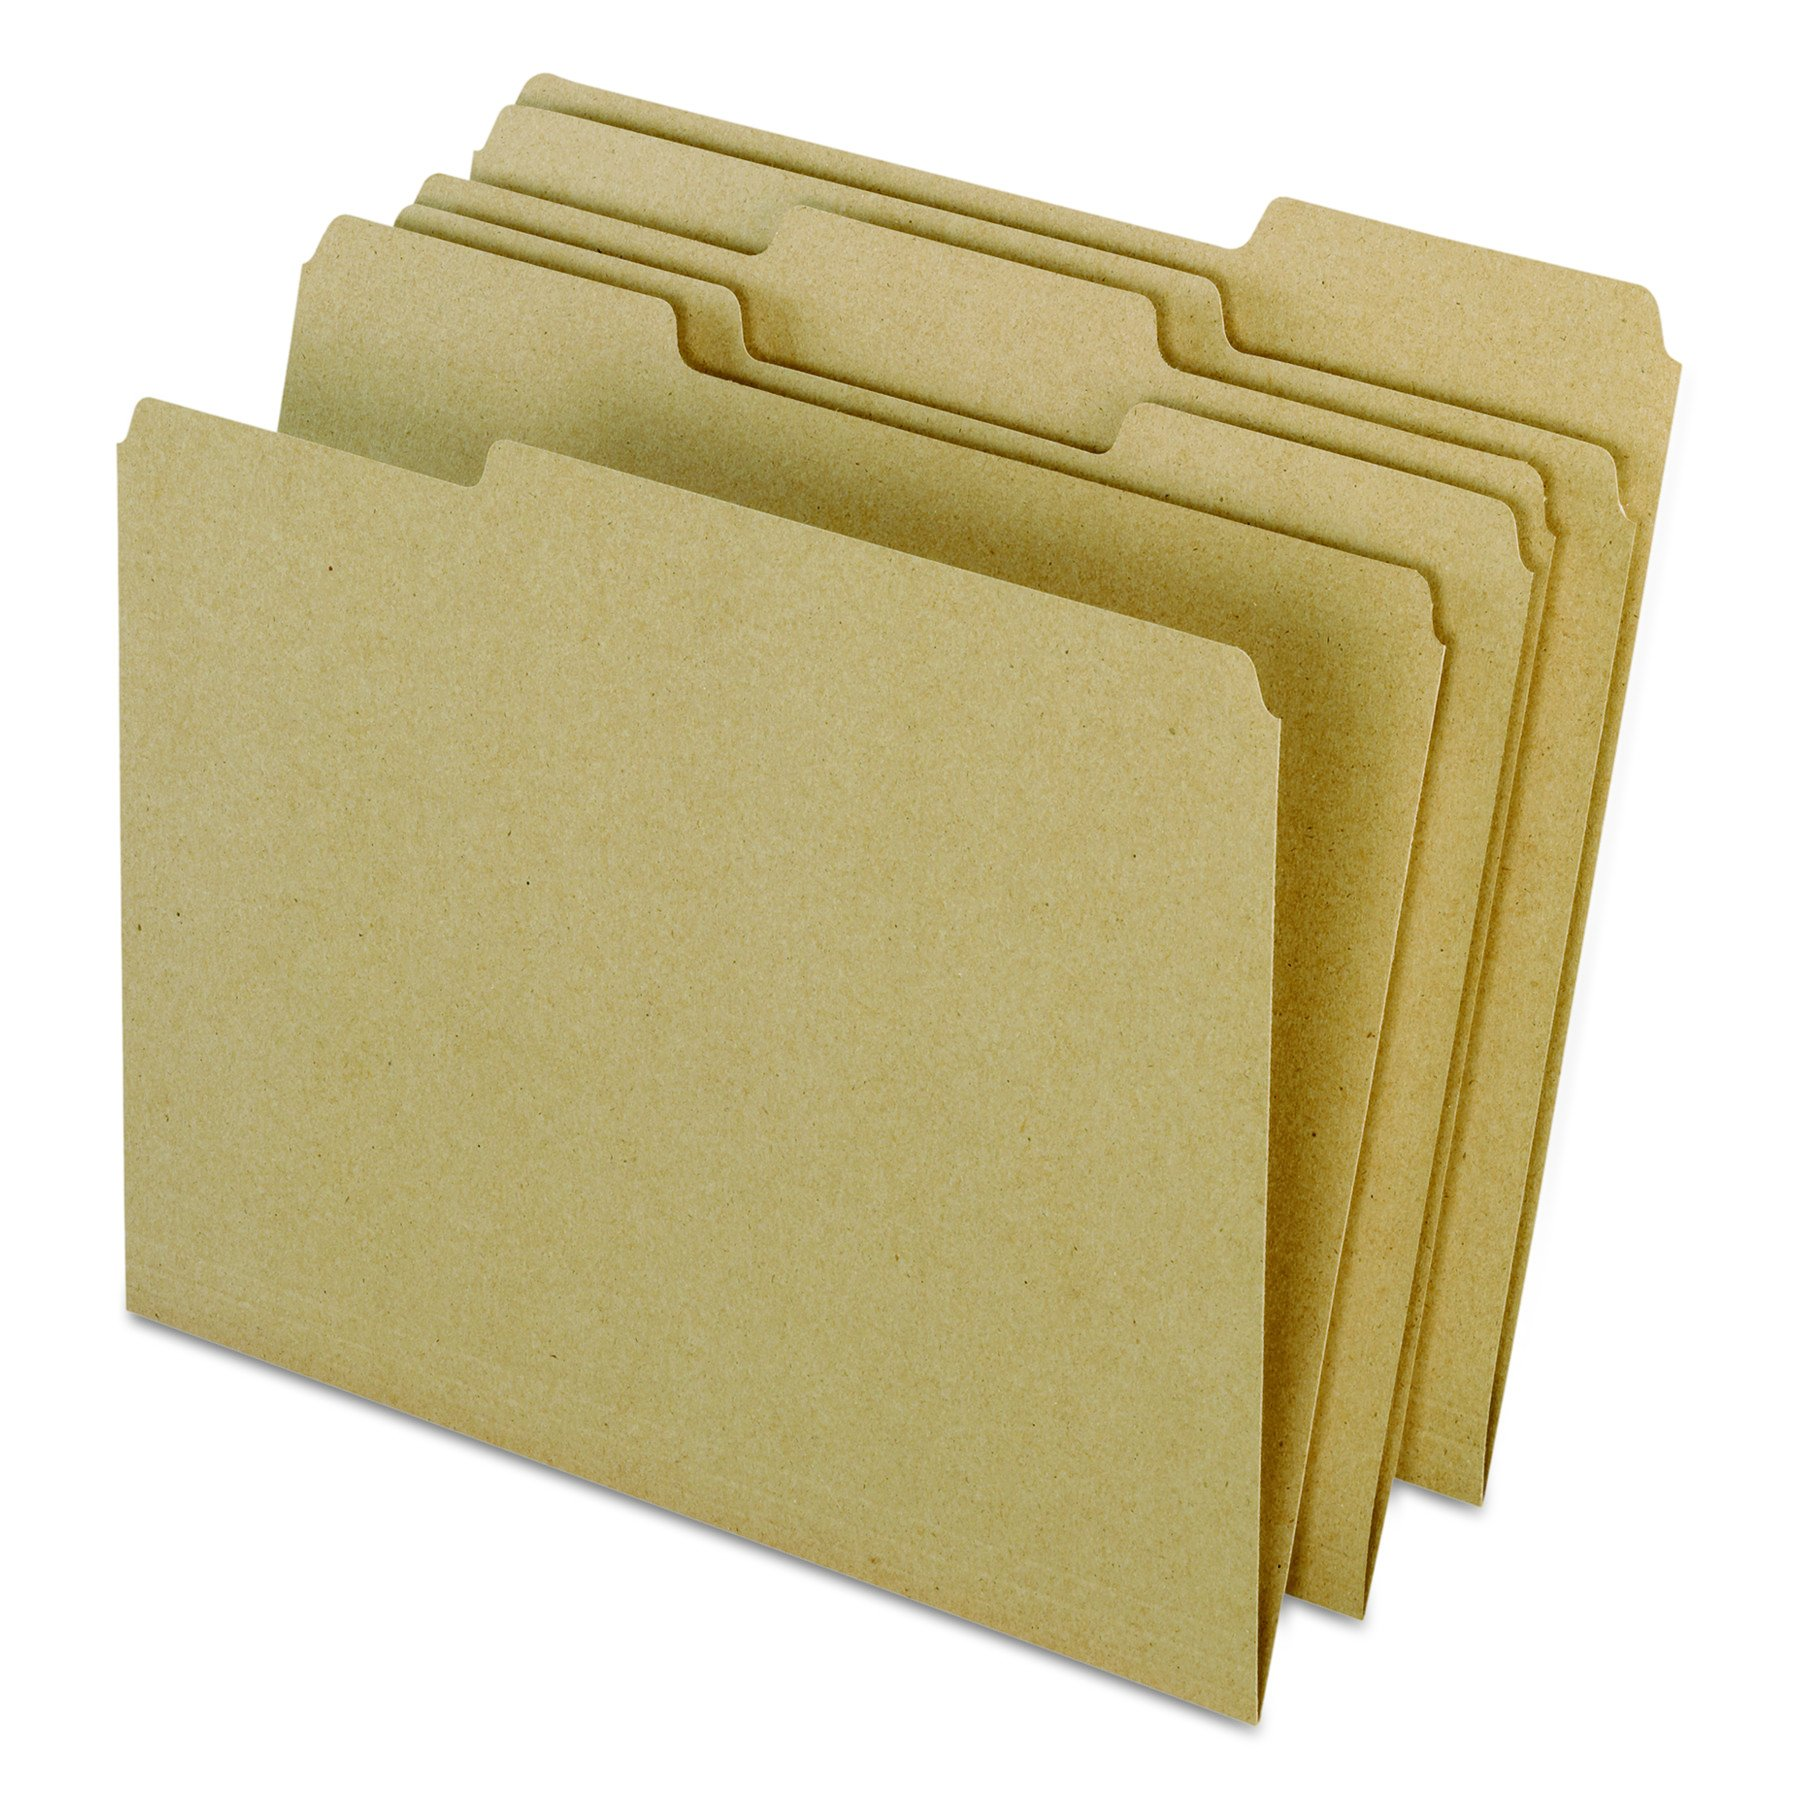 Earthwise by Pendaflex 04342 Recycled File Folders, 1/3 Top Tab, Ltr, Natural (Box of 100) by Pendaflex